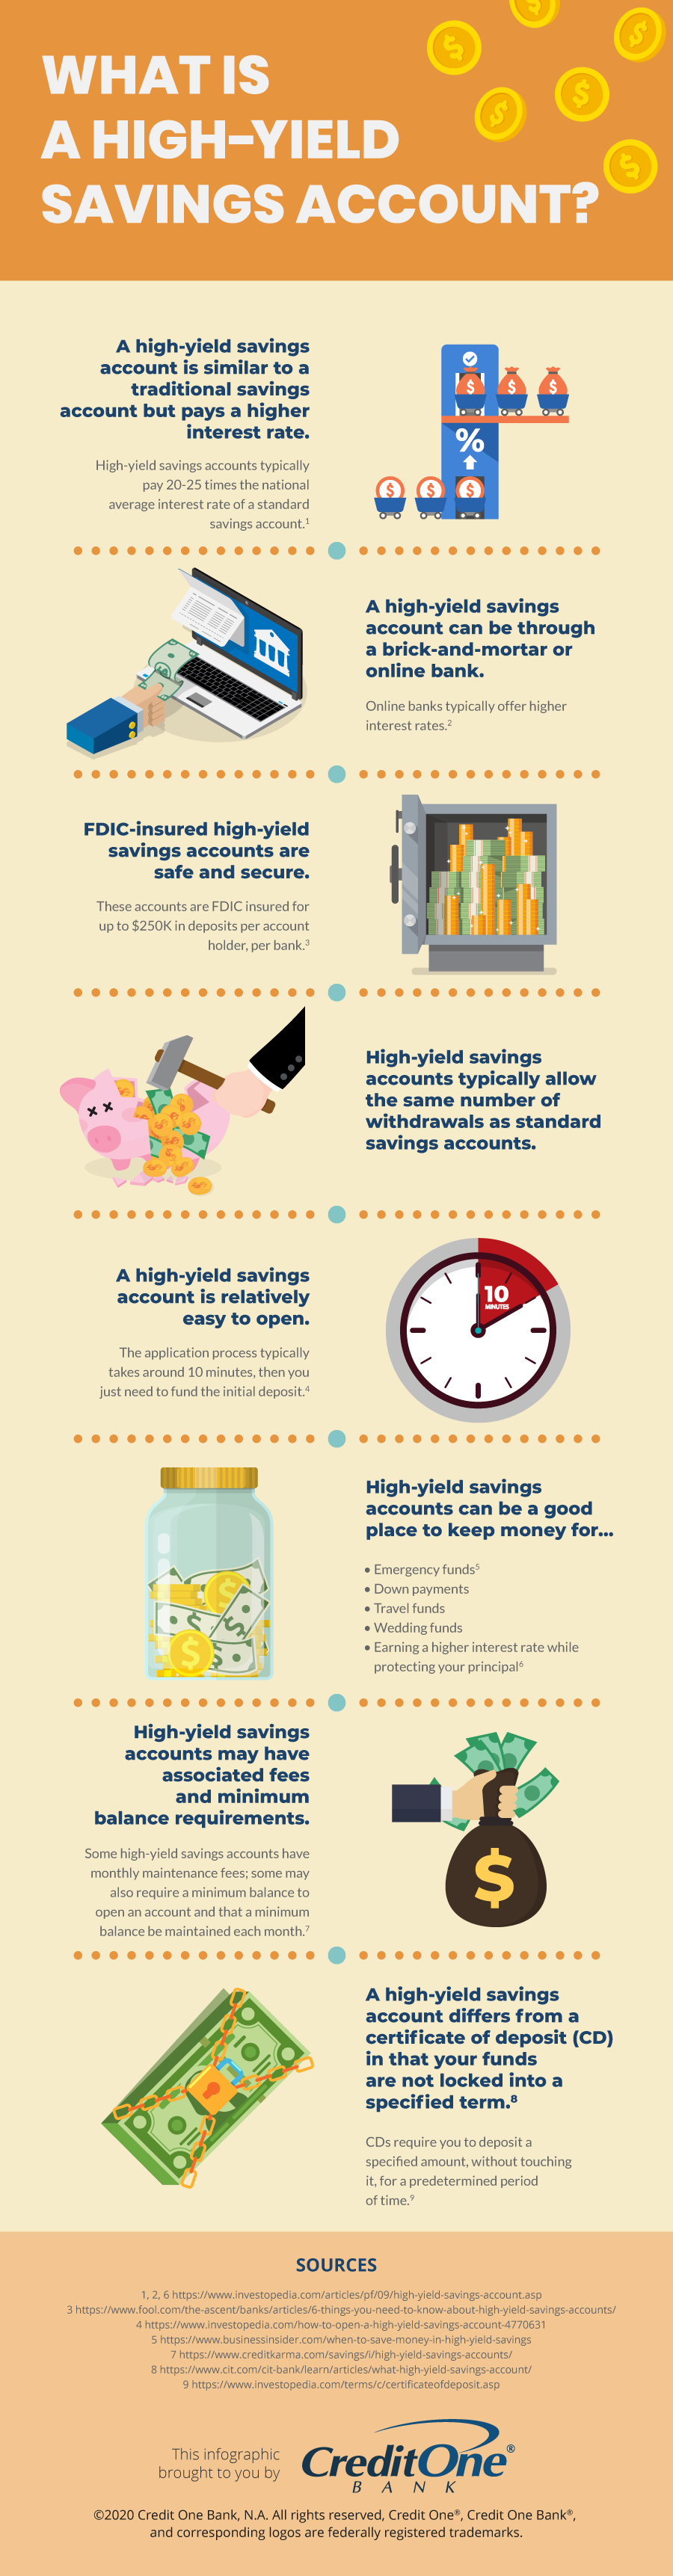 Infographic on high-yield savings accounts